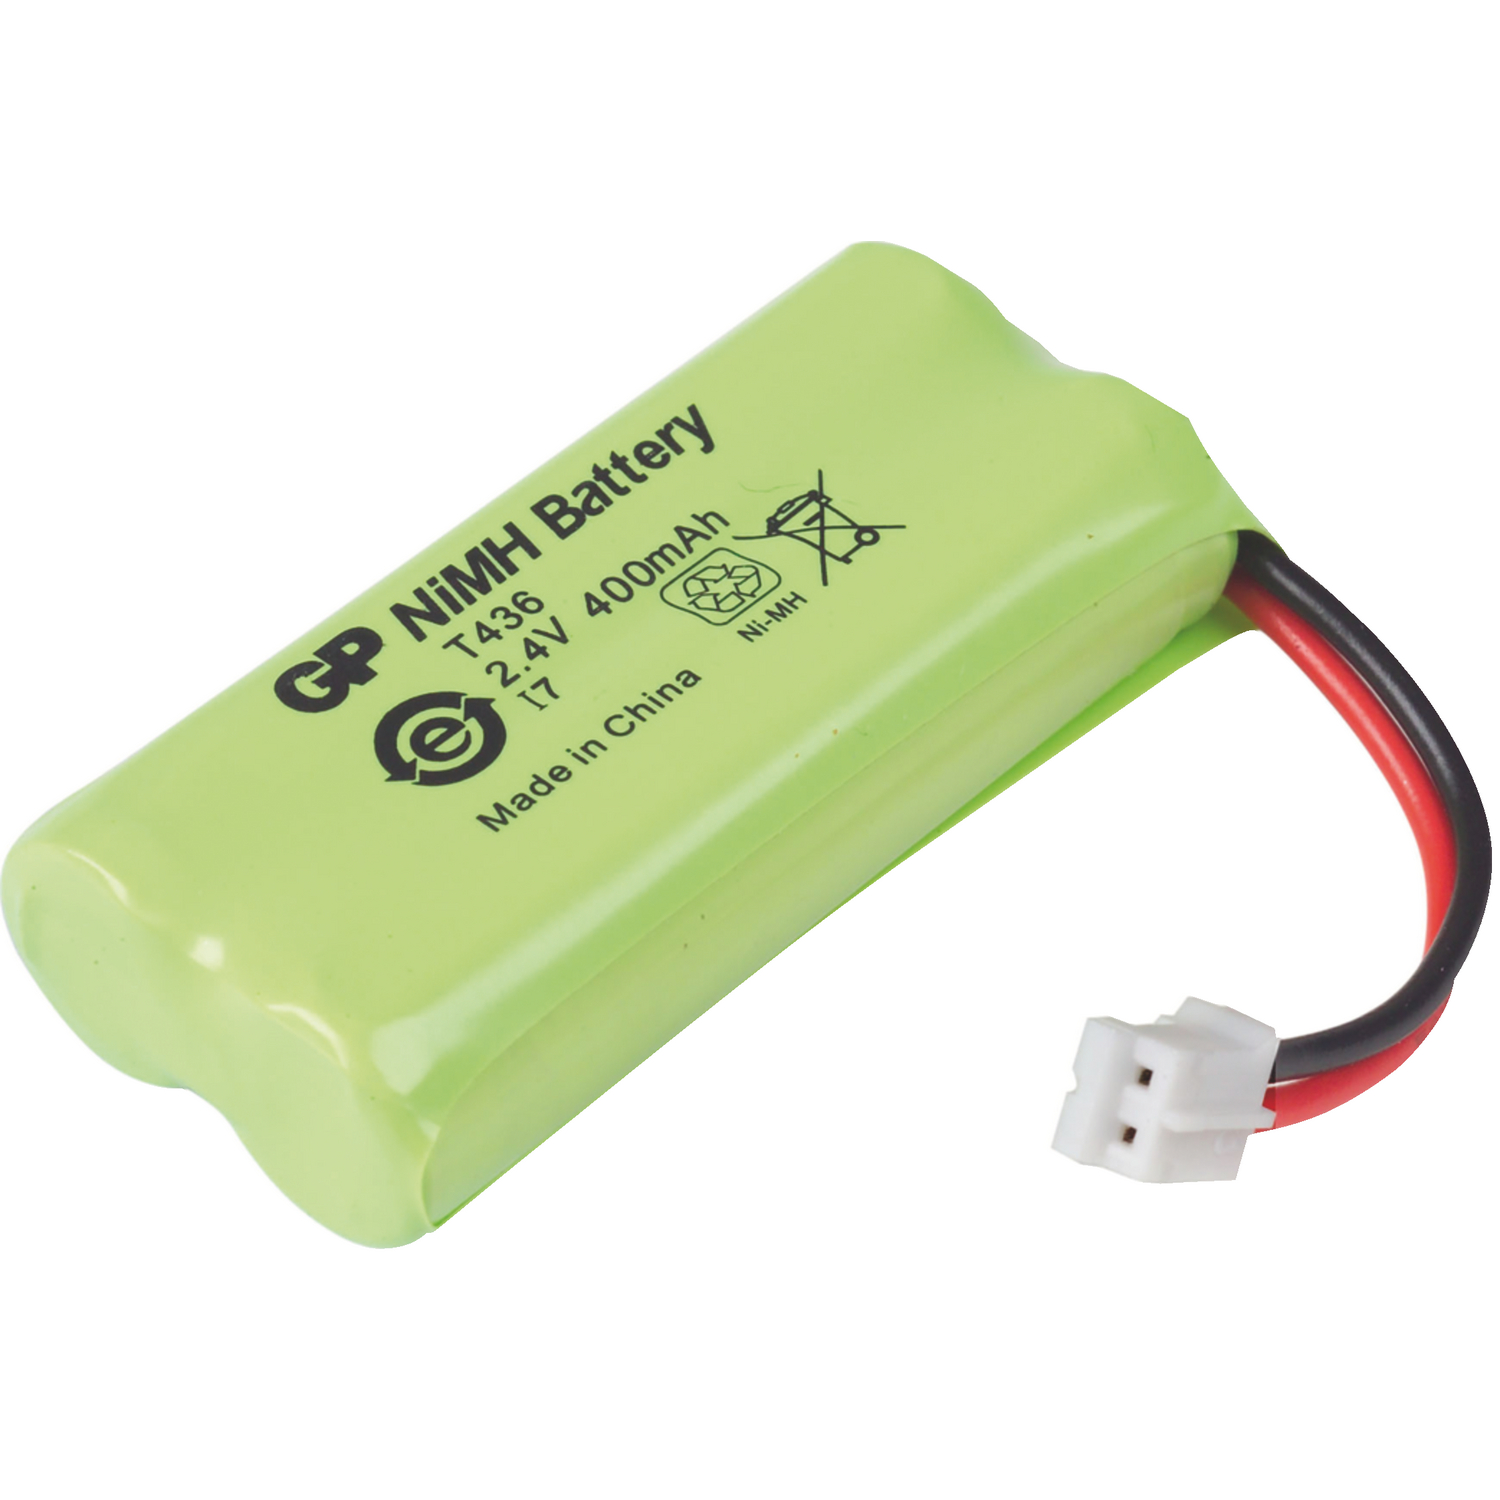 Accu T436 Gp Rechargeable Nimh Battery Pack 2 4 V 400